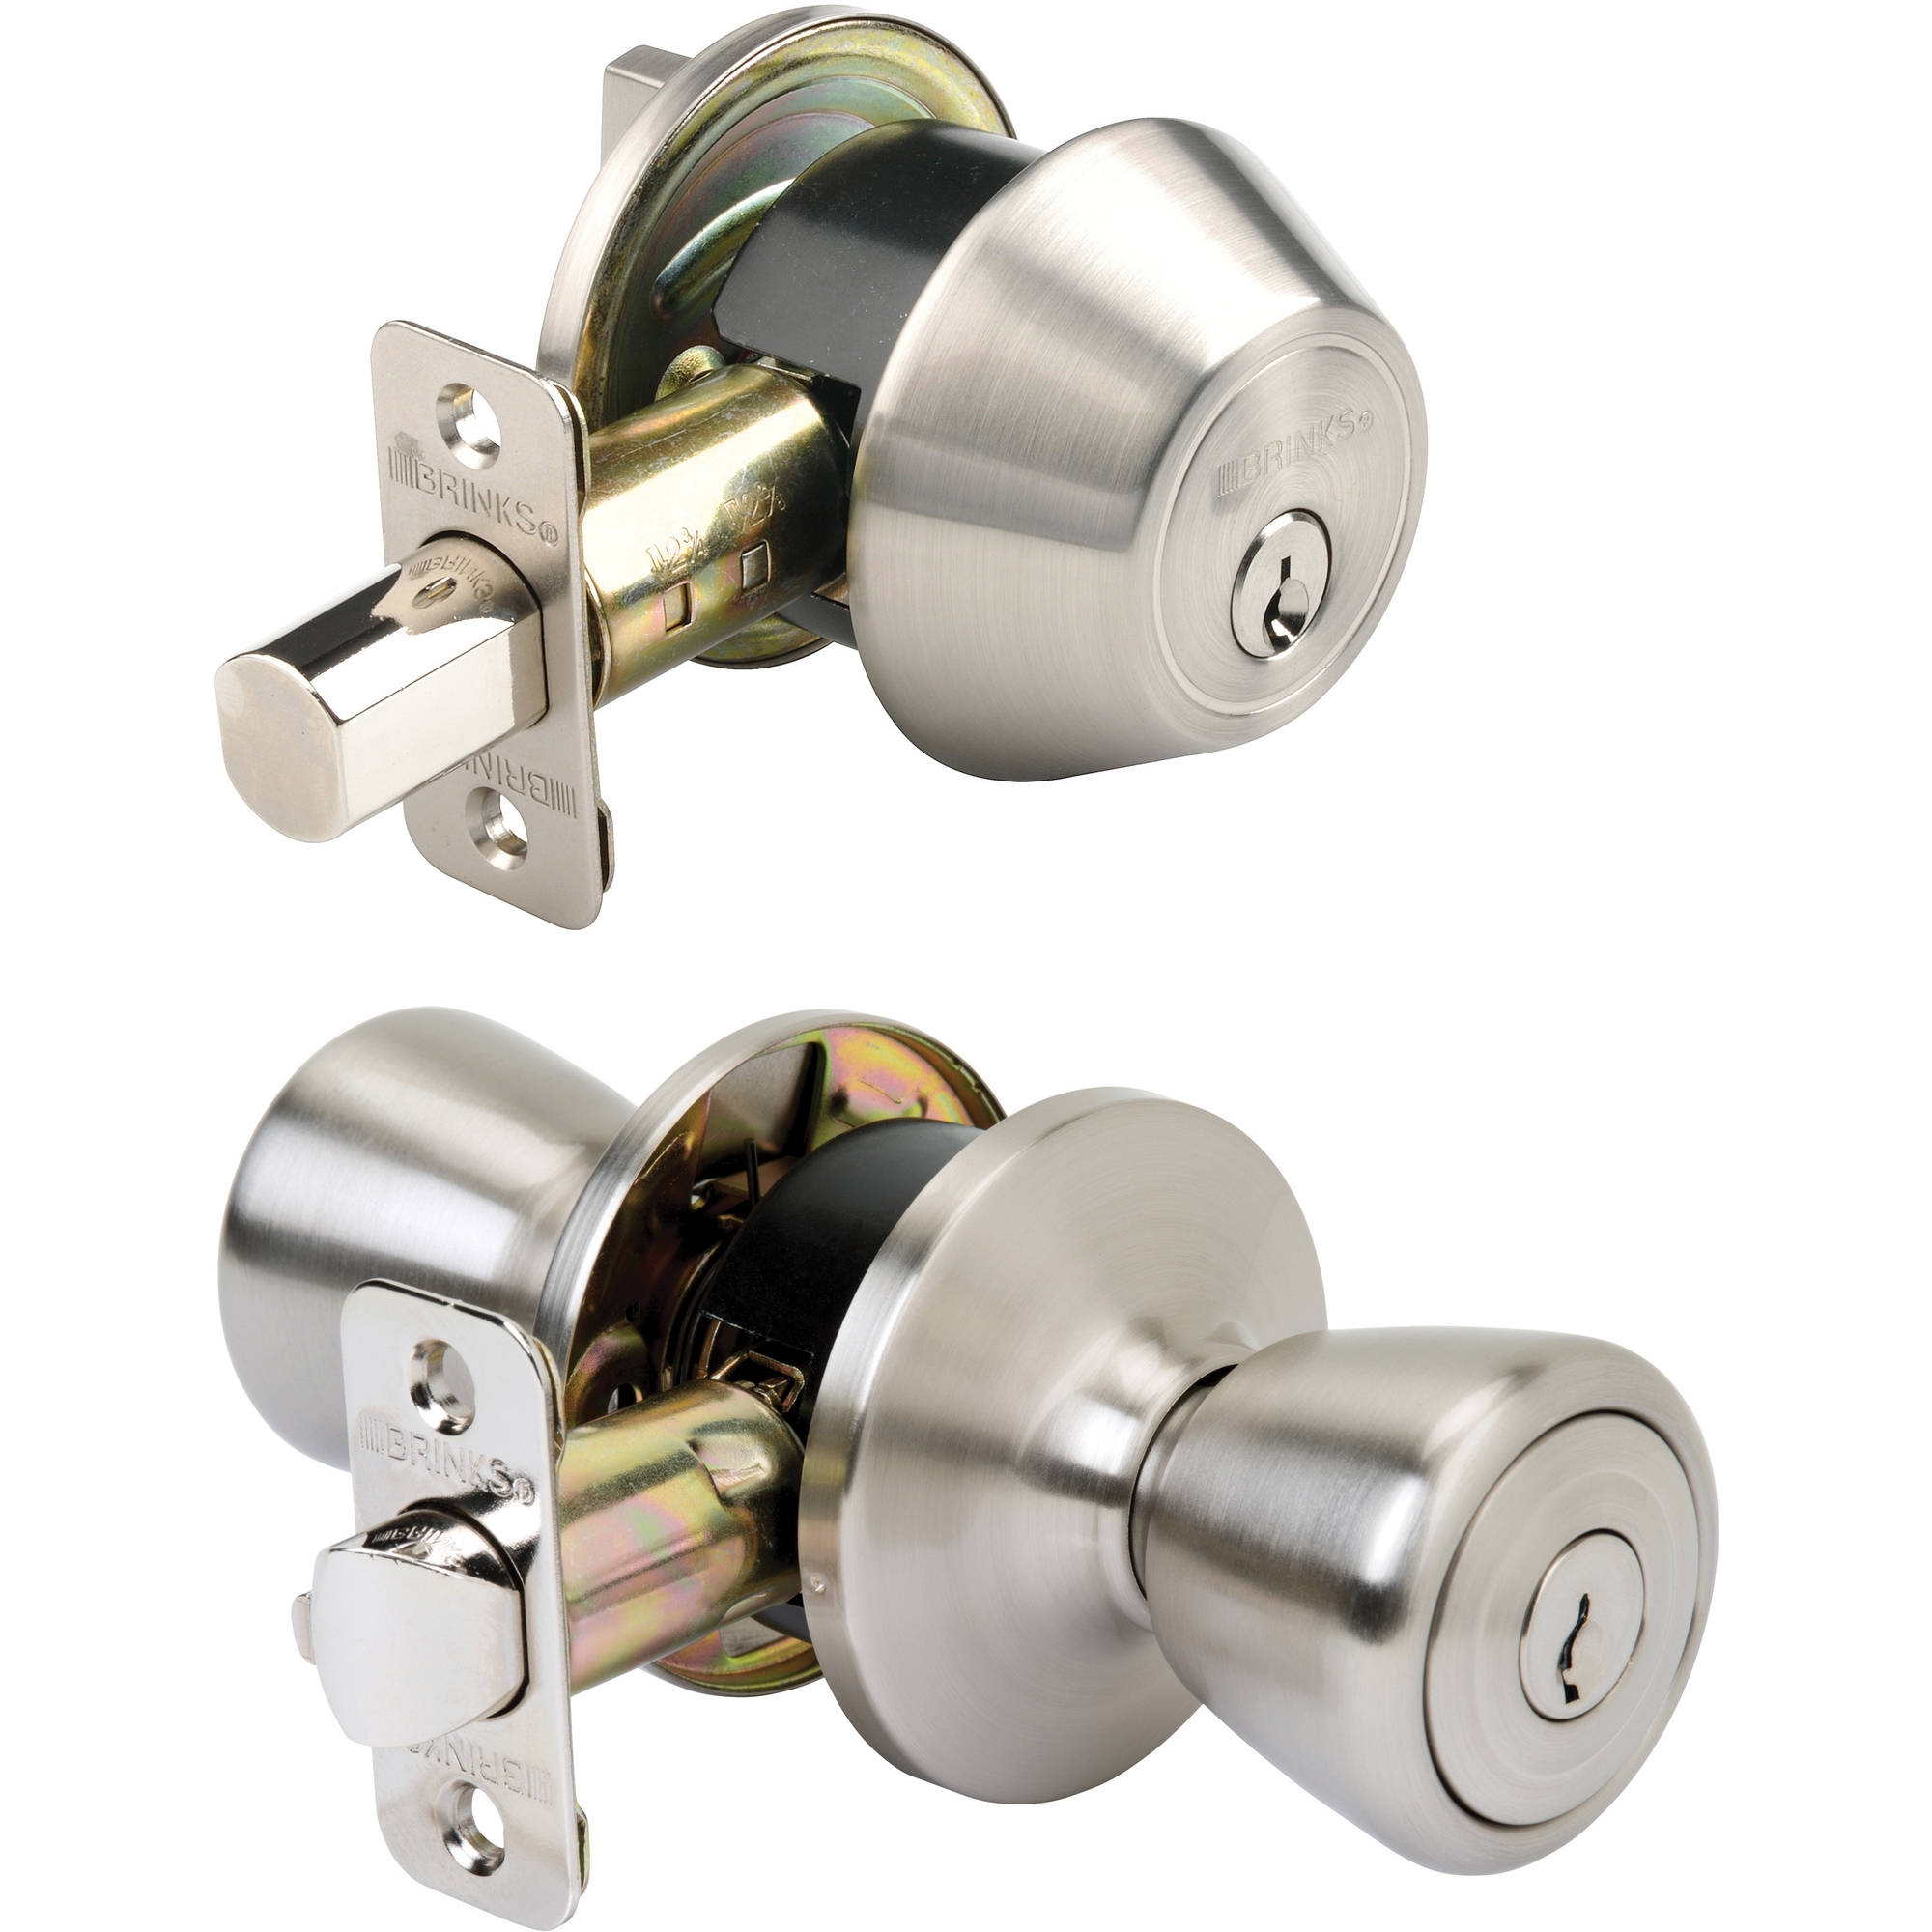 Keyed Door Knob And Deadbolt Lock